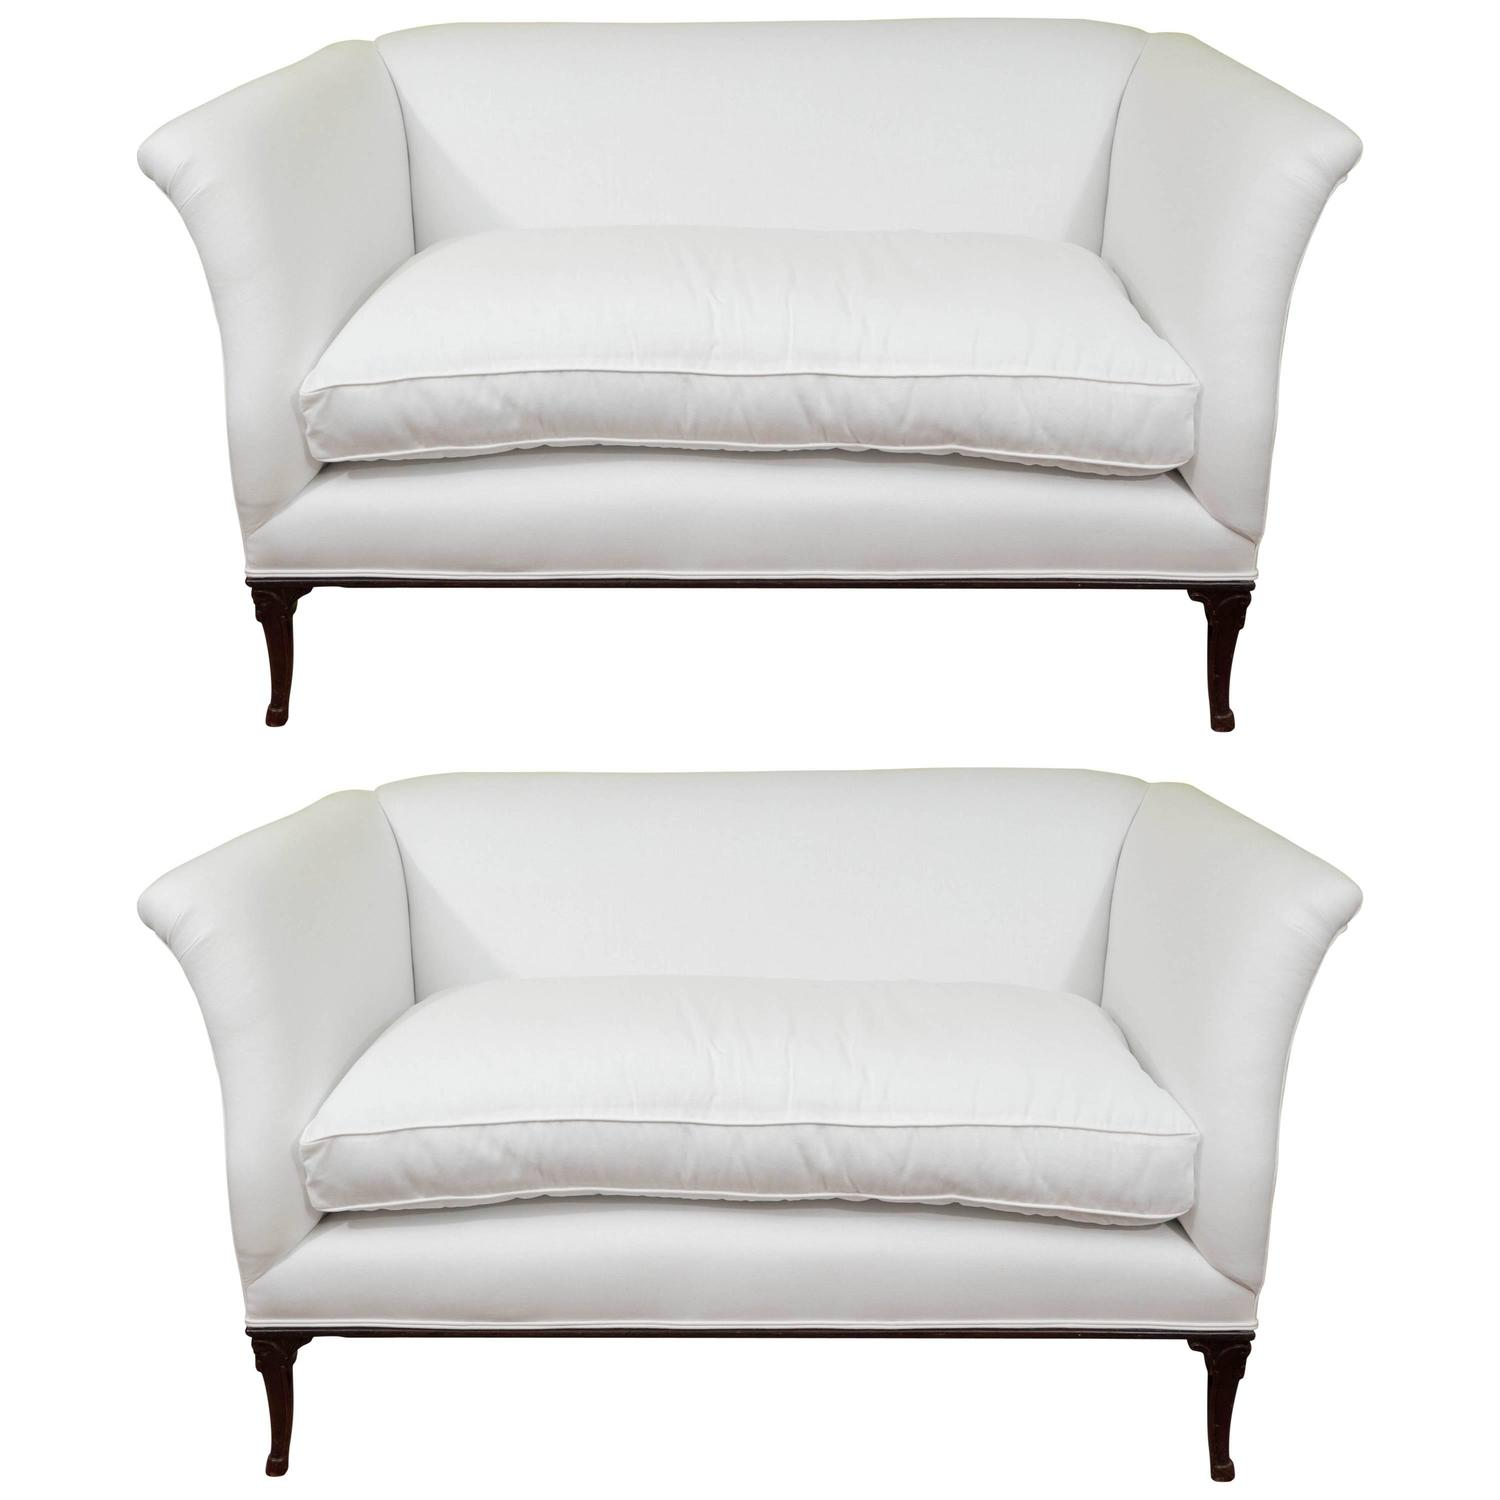 Pair of vintage settees for sale at 1stdibs for Settees for sale